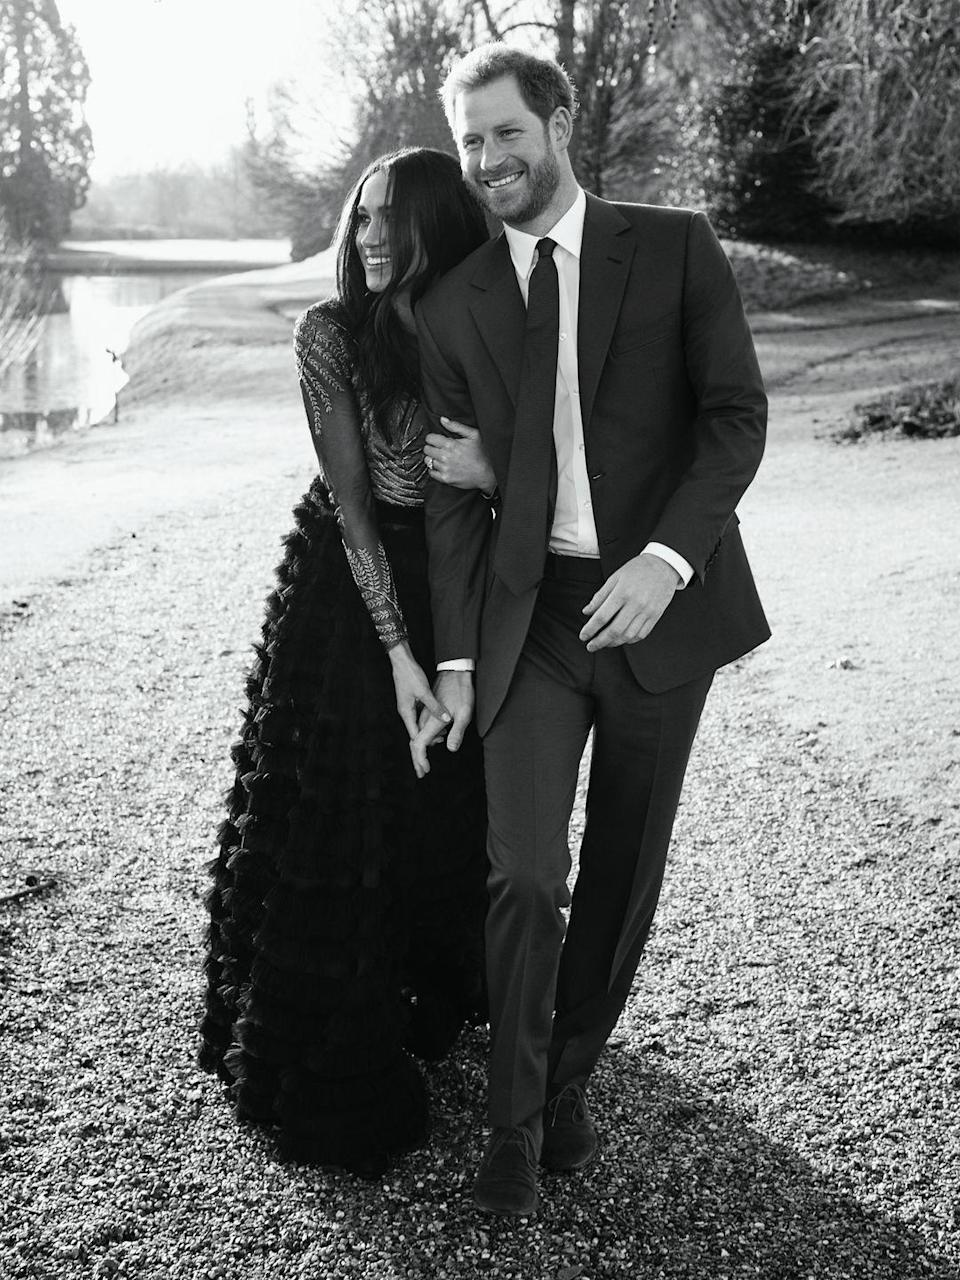 """<p>Meghan wore a gorgeous gown by Ralph & Russo <a href=""""https://www.townandcountrymag.com/society/tradition/a14477448/prince-harry-meghan-markles-engagement-photos/"""" rel=""""nofollow noopener"""" target=""""_blank"""" data-ylk=""""slk:for her official engagement portraits with Prince Harry."""" class=""""link rapid-noclick-resp"""">for her official engagement portraits with Prince Harry.</a> The ball gown is from the luxury designer's fall 2017 couture collection.</p>"""